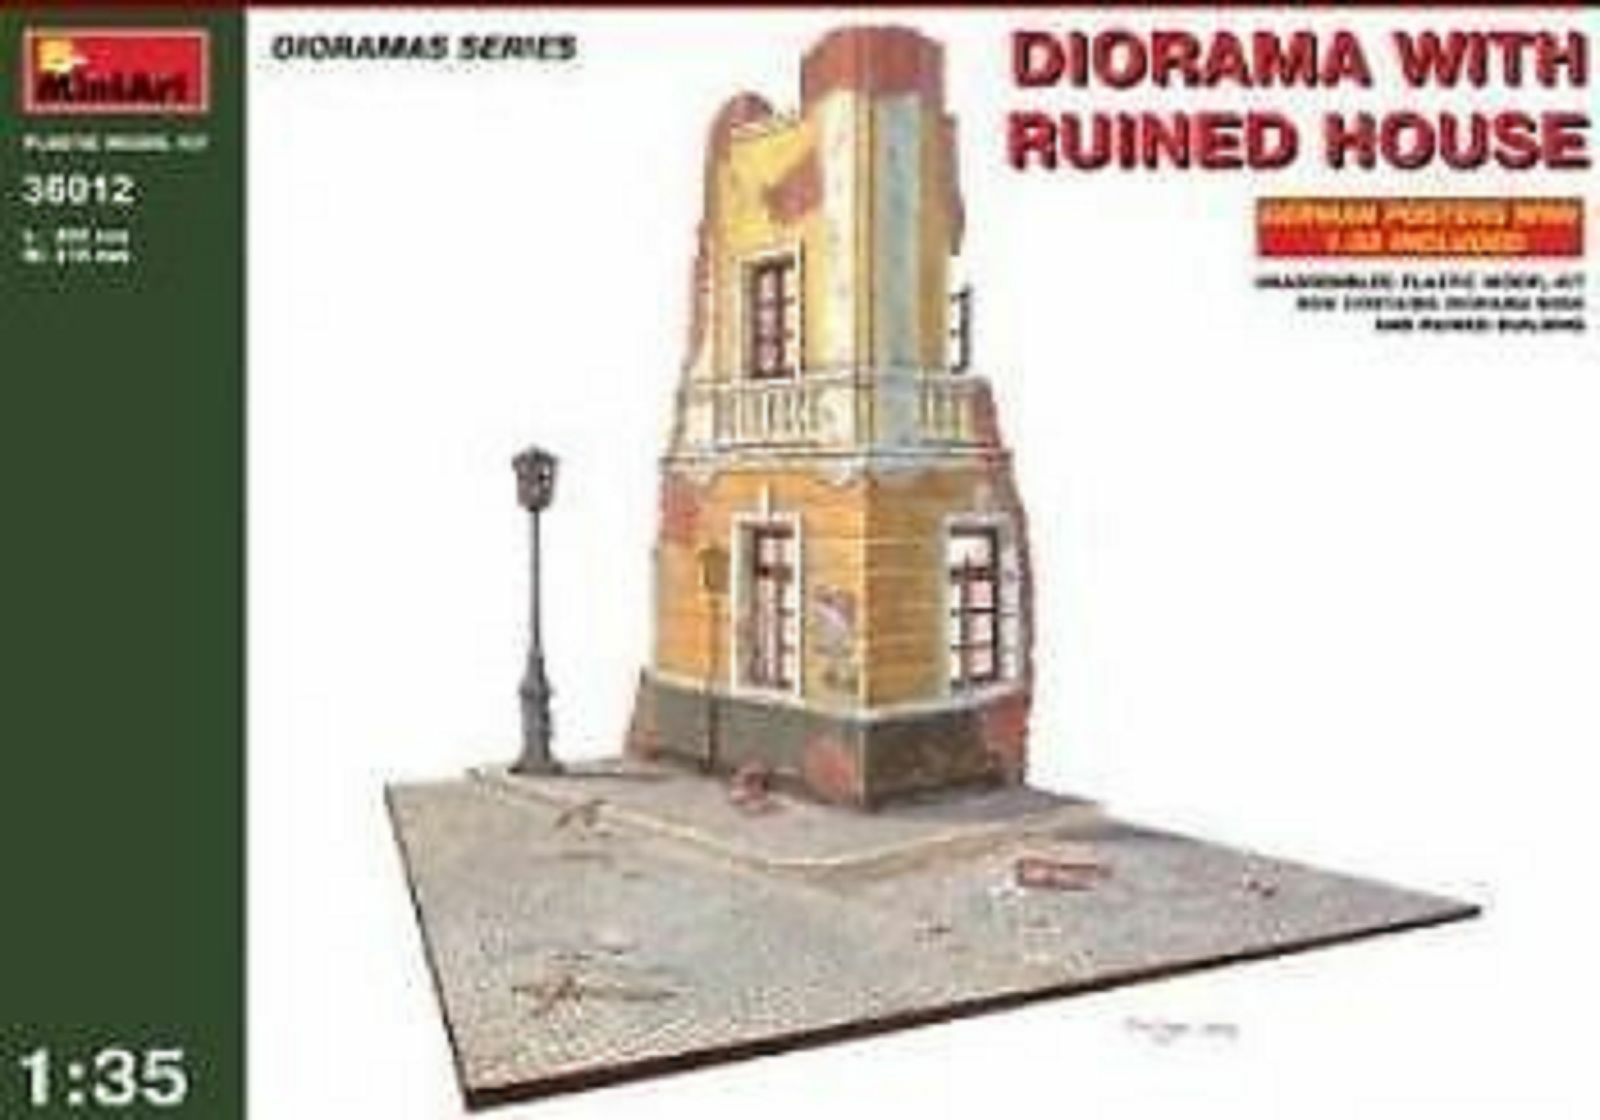 1 35 MINIART DIORAMA WITH RUINED HOUSE model kit 36012 plastic model kit